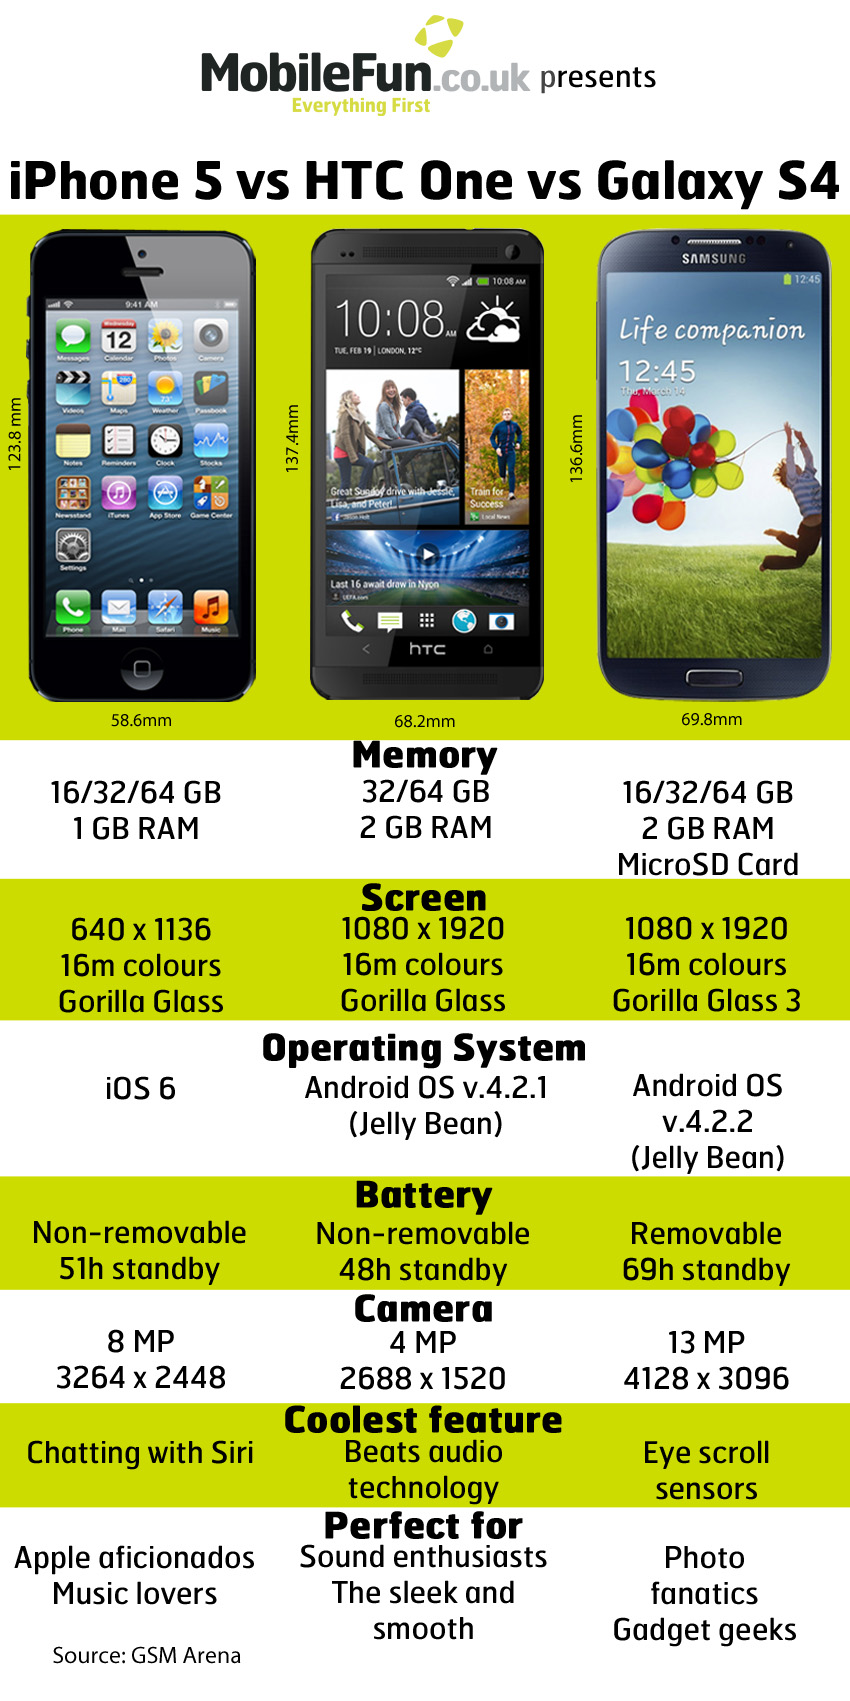 iphone 5 vs htc one vs galaxy s4 mobile fun blog